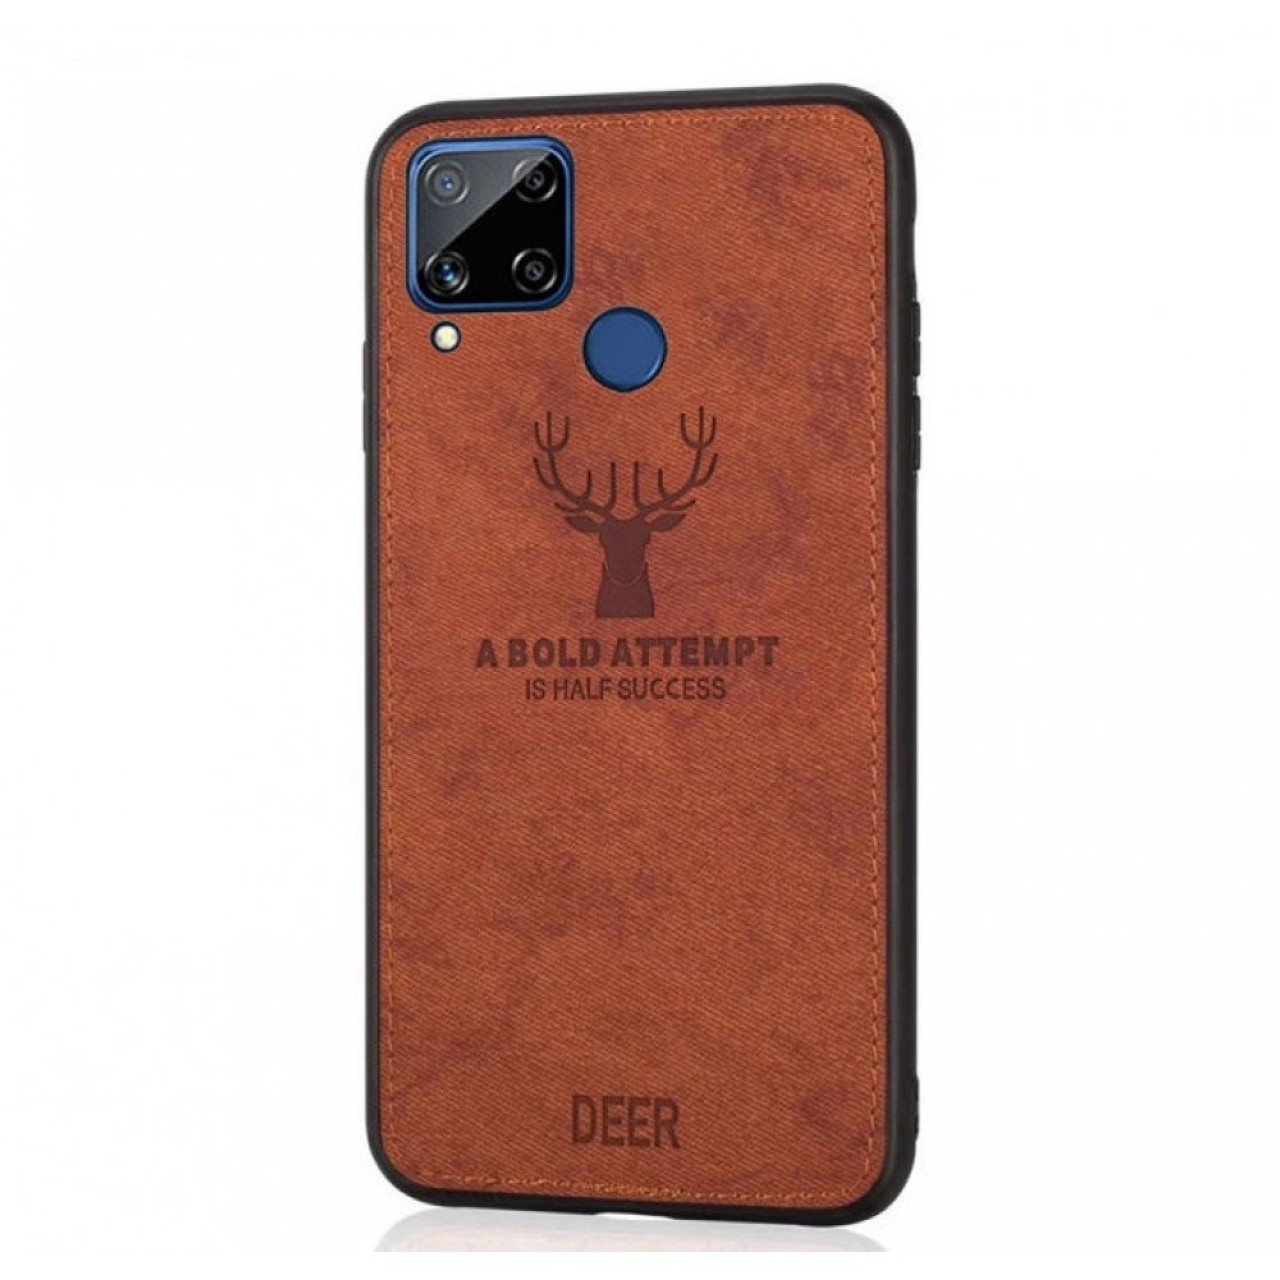 DEER CLOTH BACK CASE FOR HUAWEI P40 LITE - BROWN